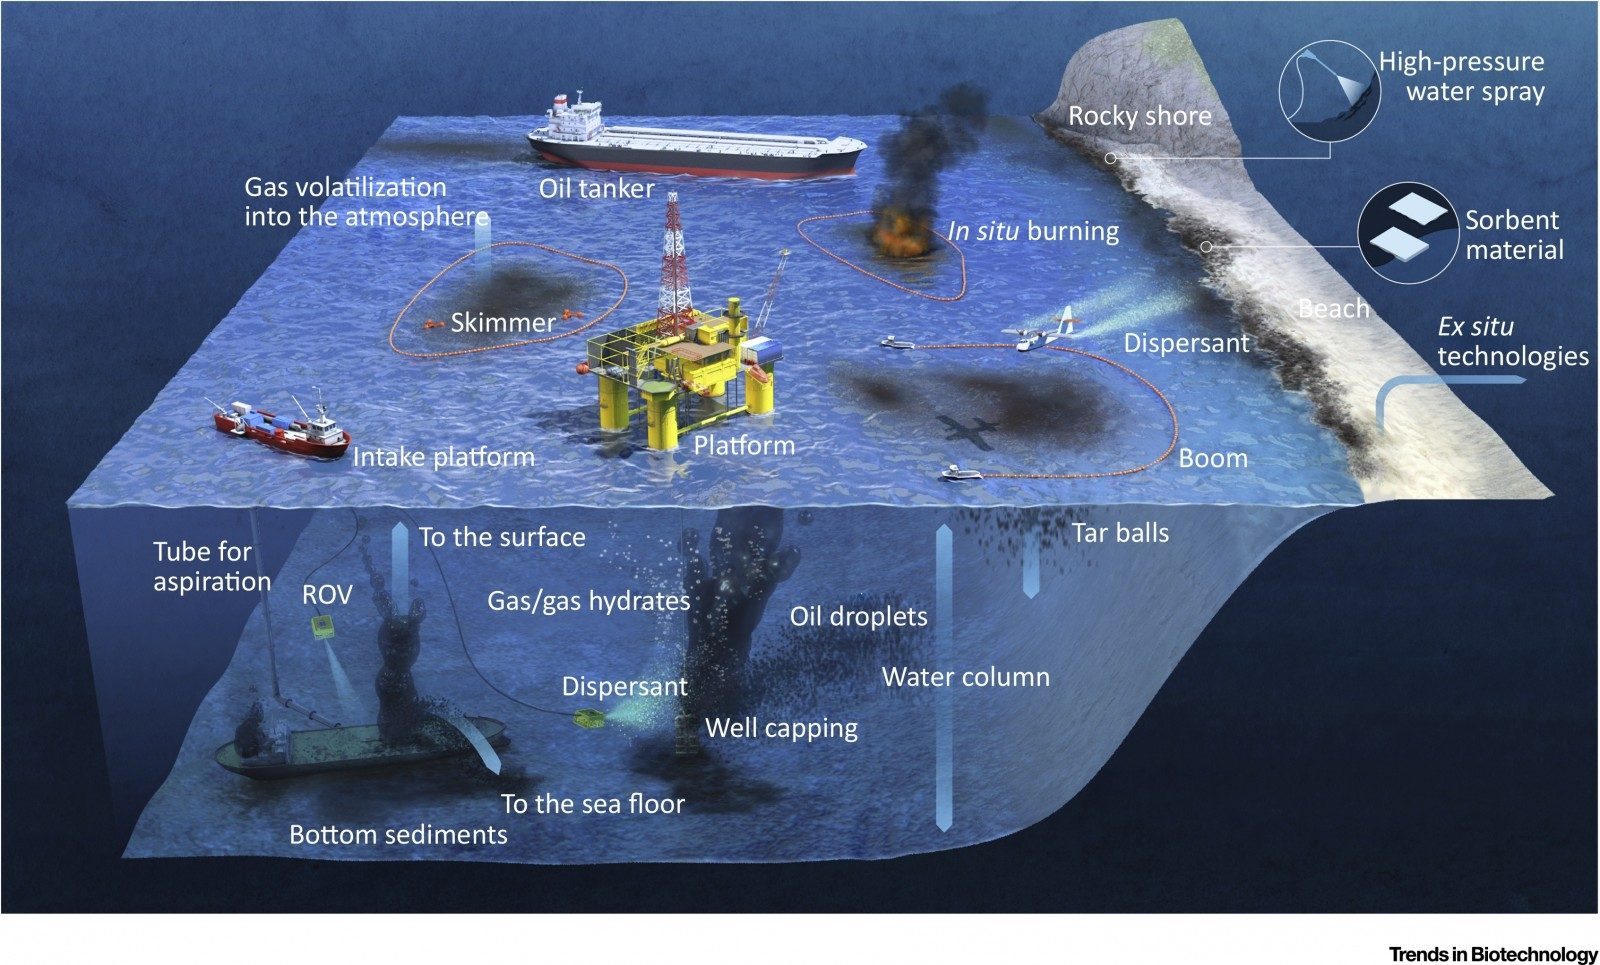 Hazard chains: from anthropic oil spills to ecosystem pollution. Can tiny organisms be the solution?